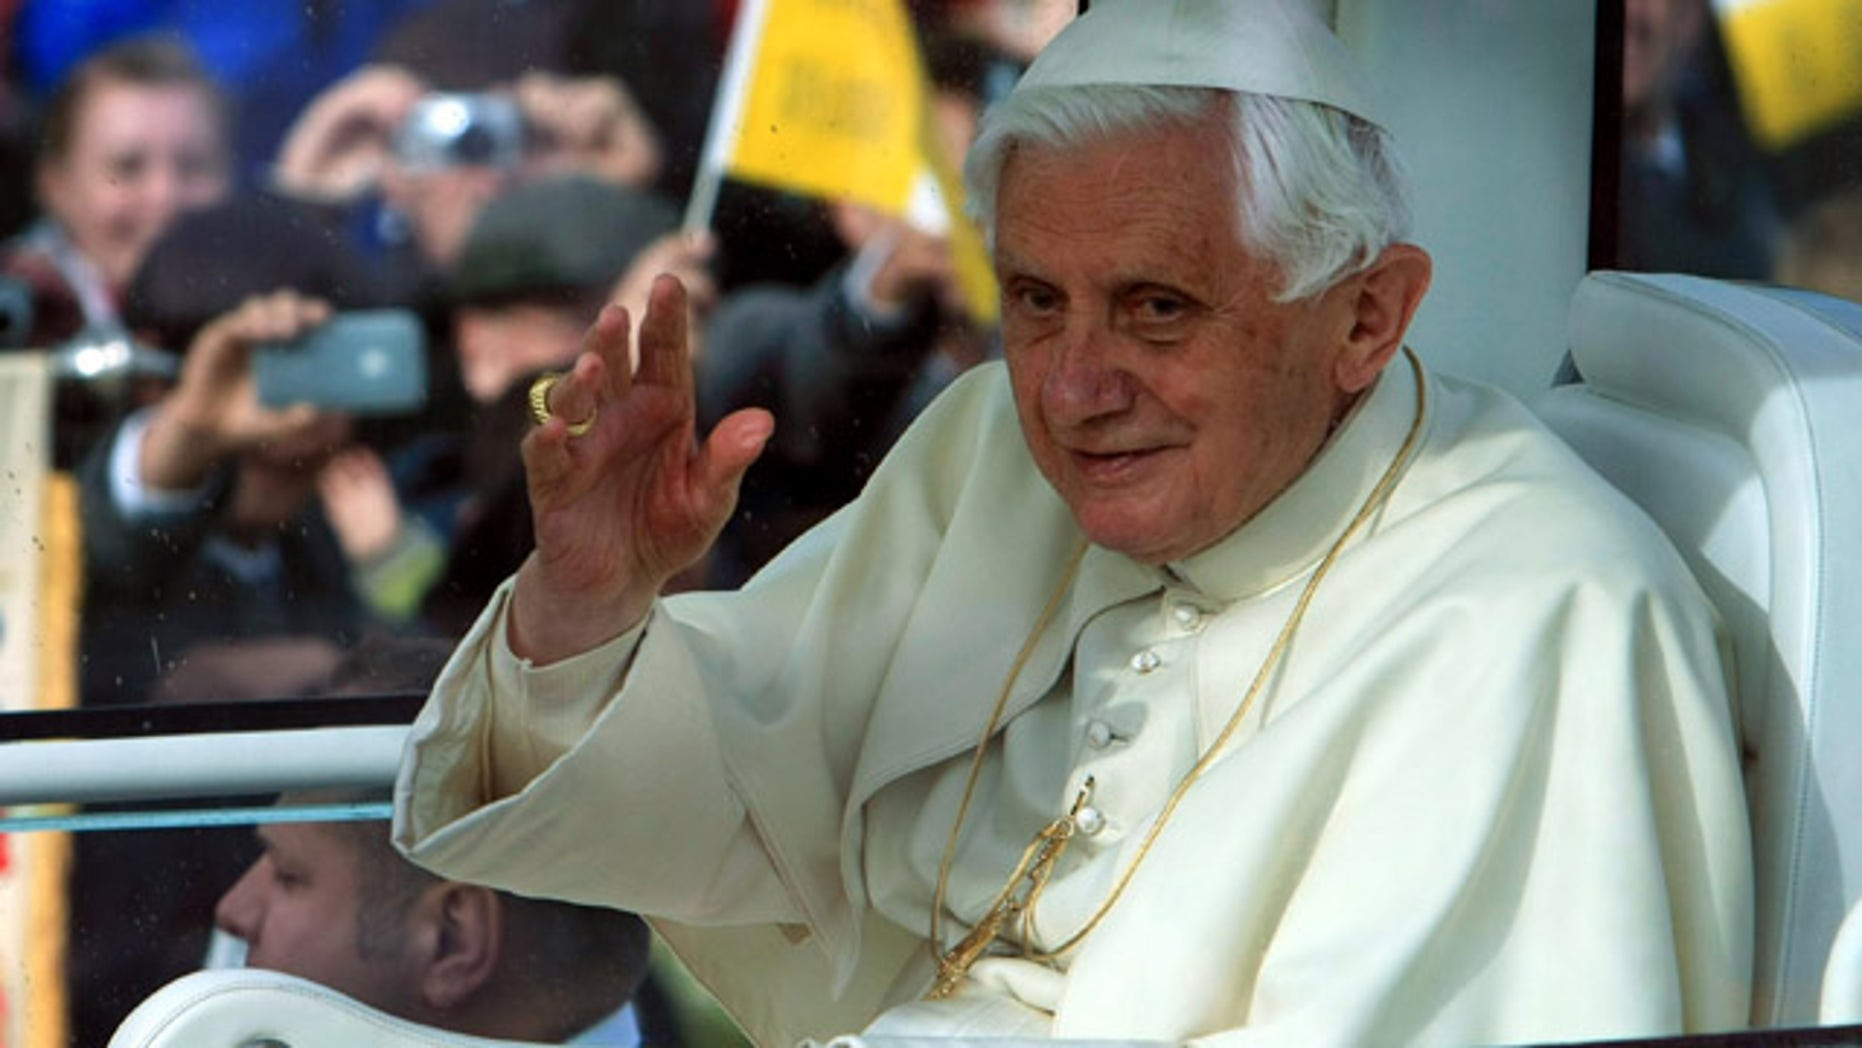 Sept. 19: Pope Benedict XVI wrapped up his visit to Britain by marking the 70th anniversary of the Battle of Britain with a very personal reflection on the evil of the Nazi regime and praise for those who 'courageously' resisted it.